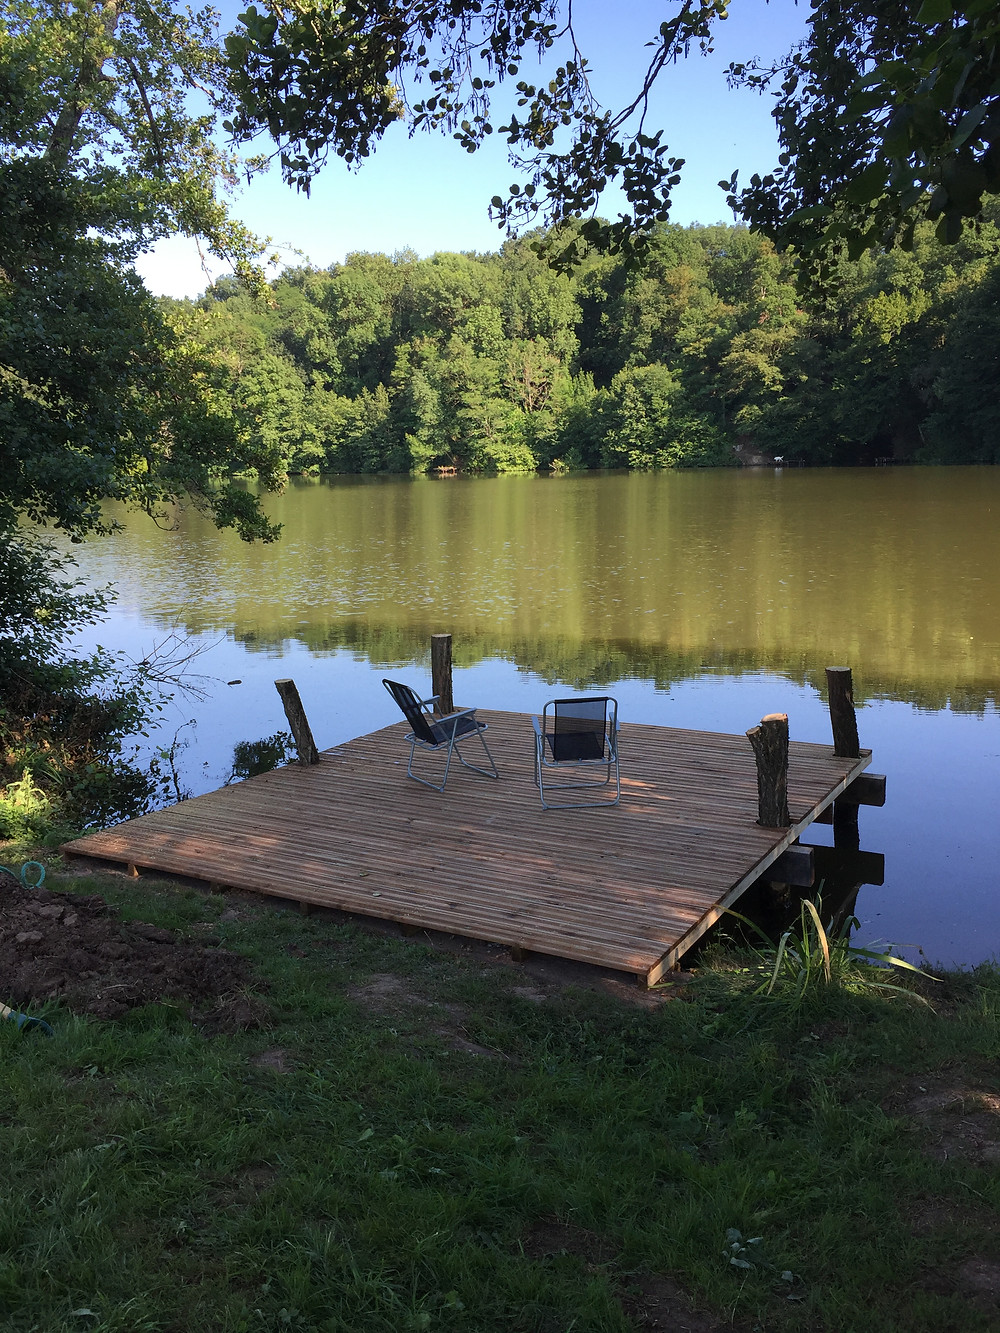 Our newly built pontoon, thank you Colin and Lee